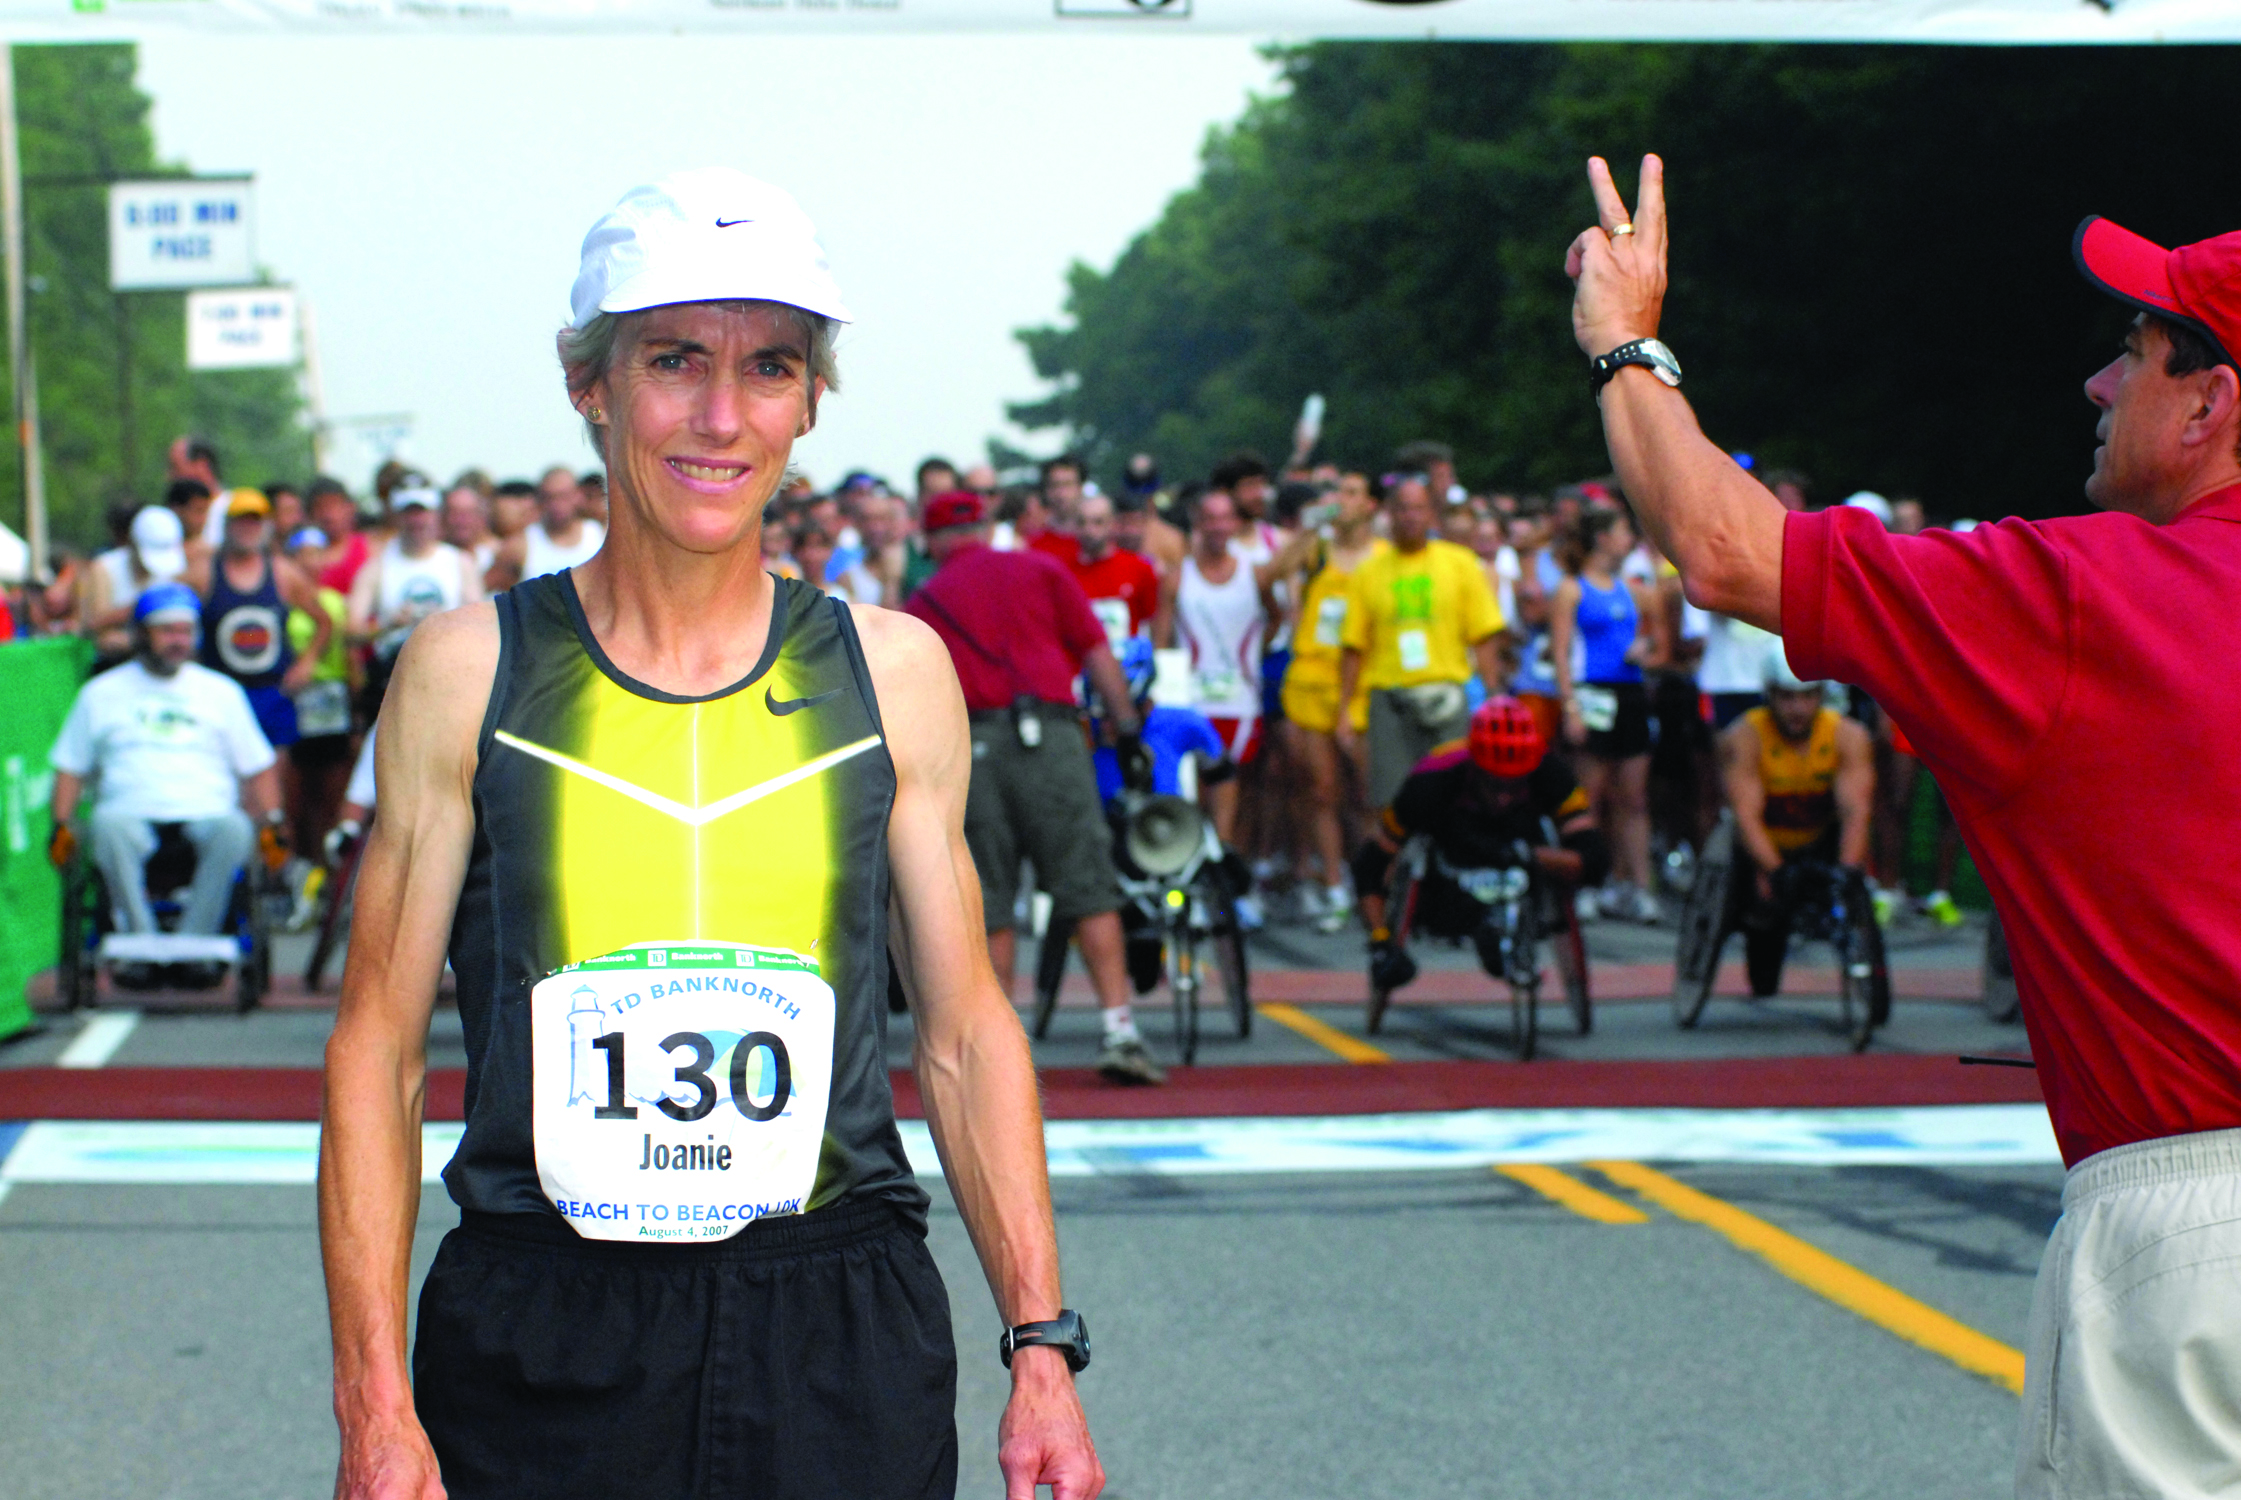 Forum on this topic: Naomi Levine, joan-benoit-samuelson-olympic-medal-in-marathon/